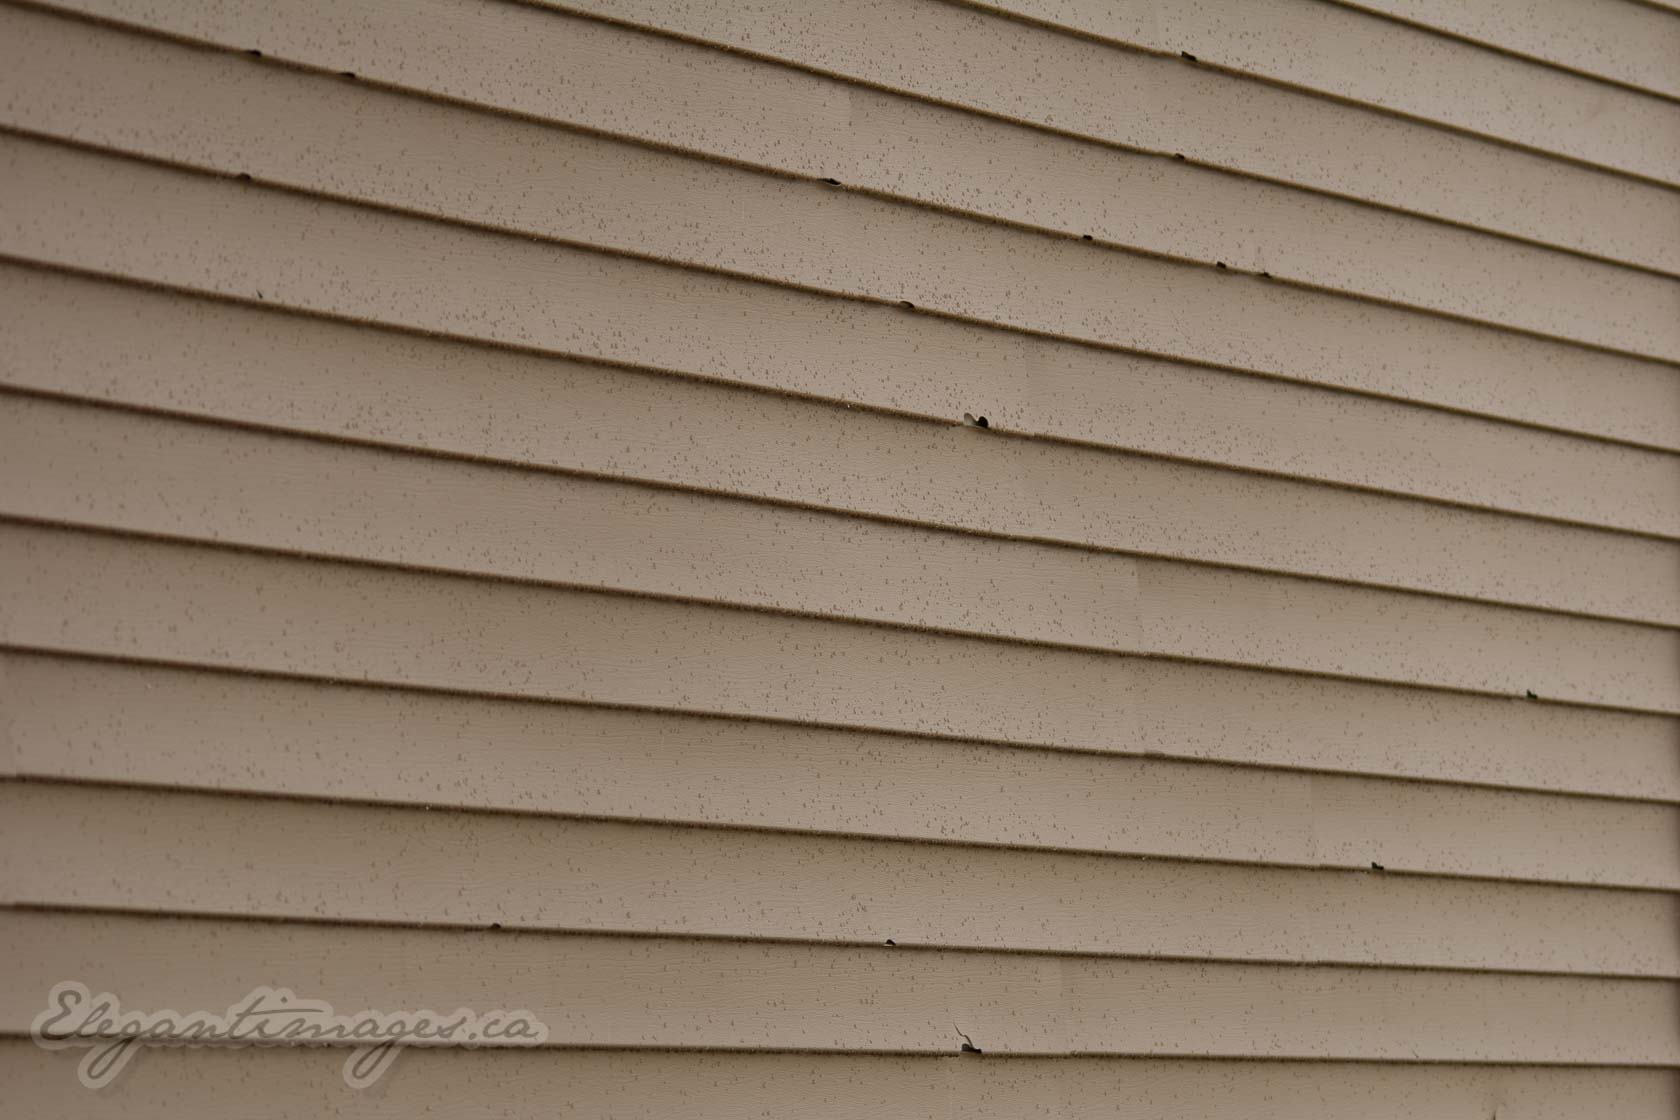 vinyl siding hail damage airdrie alberta 15 tips to